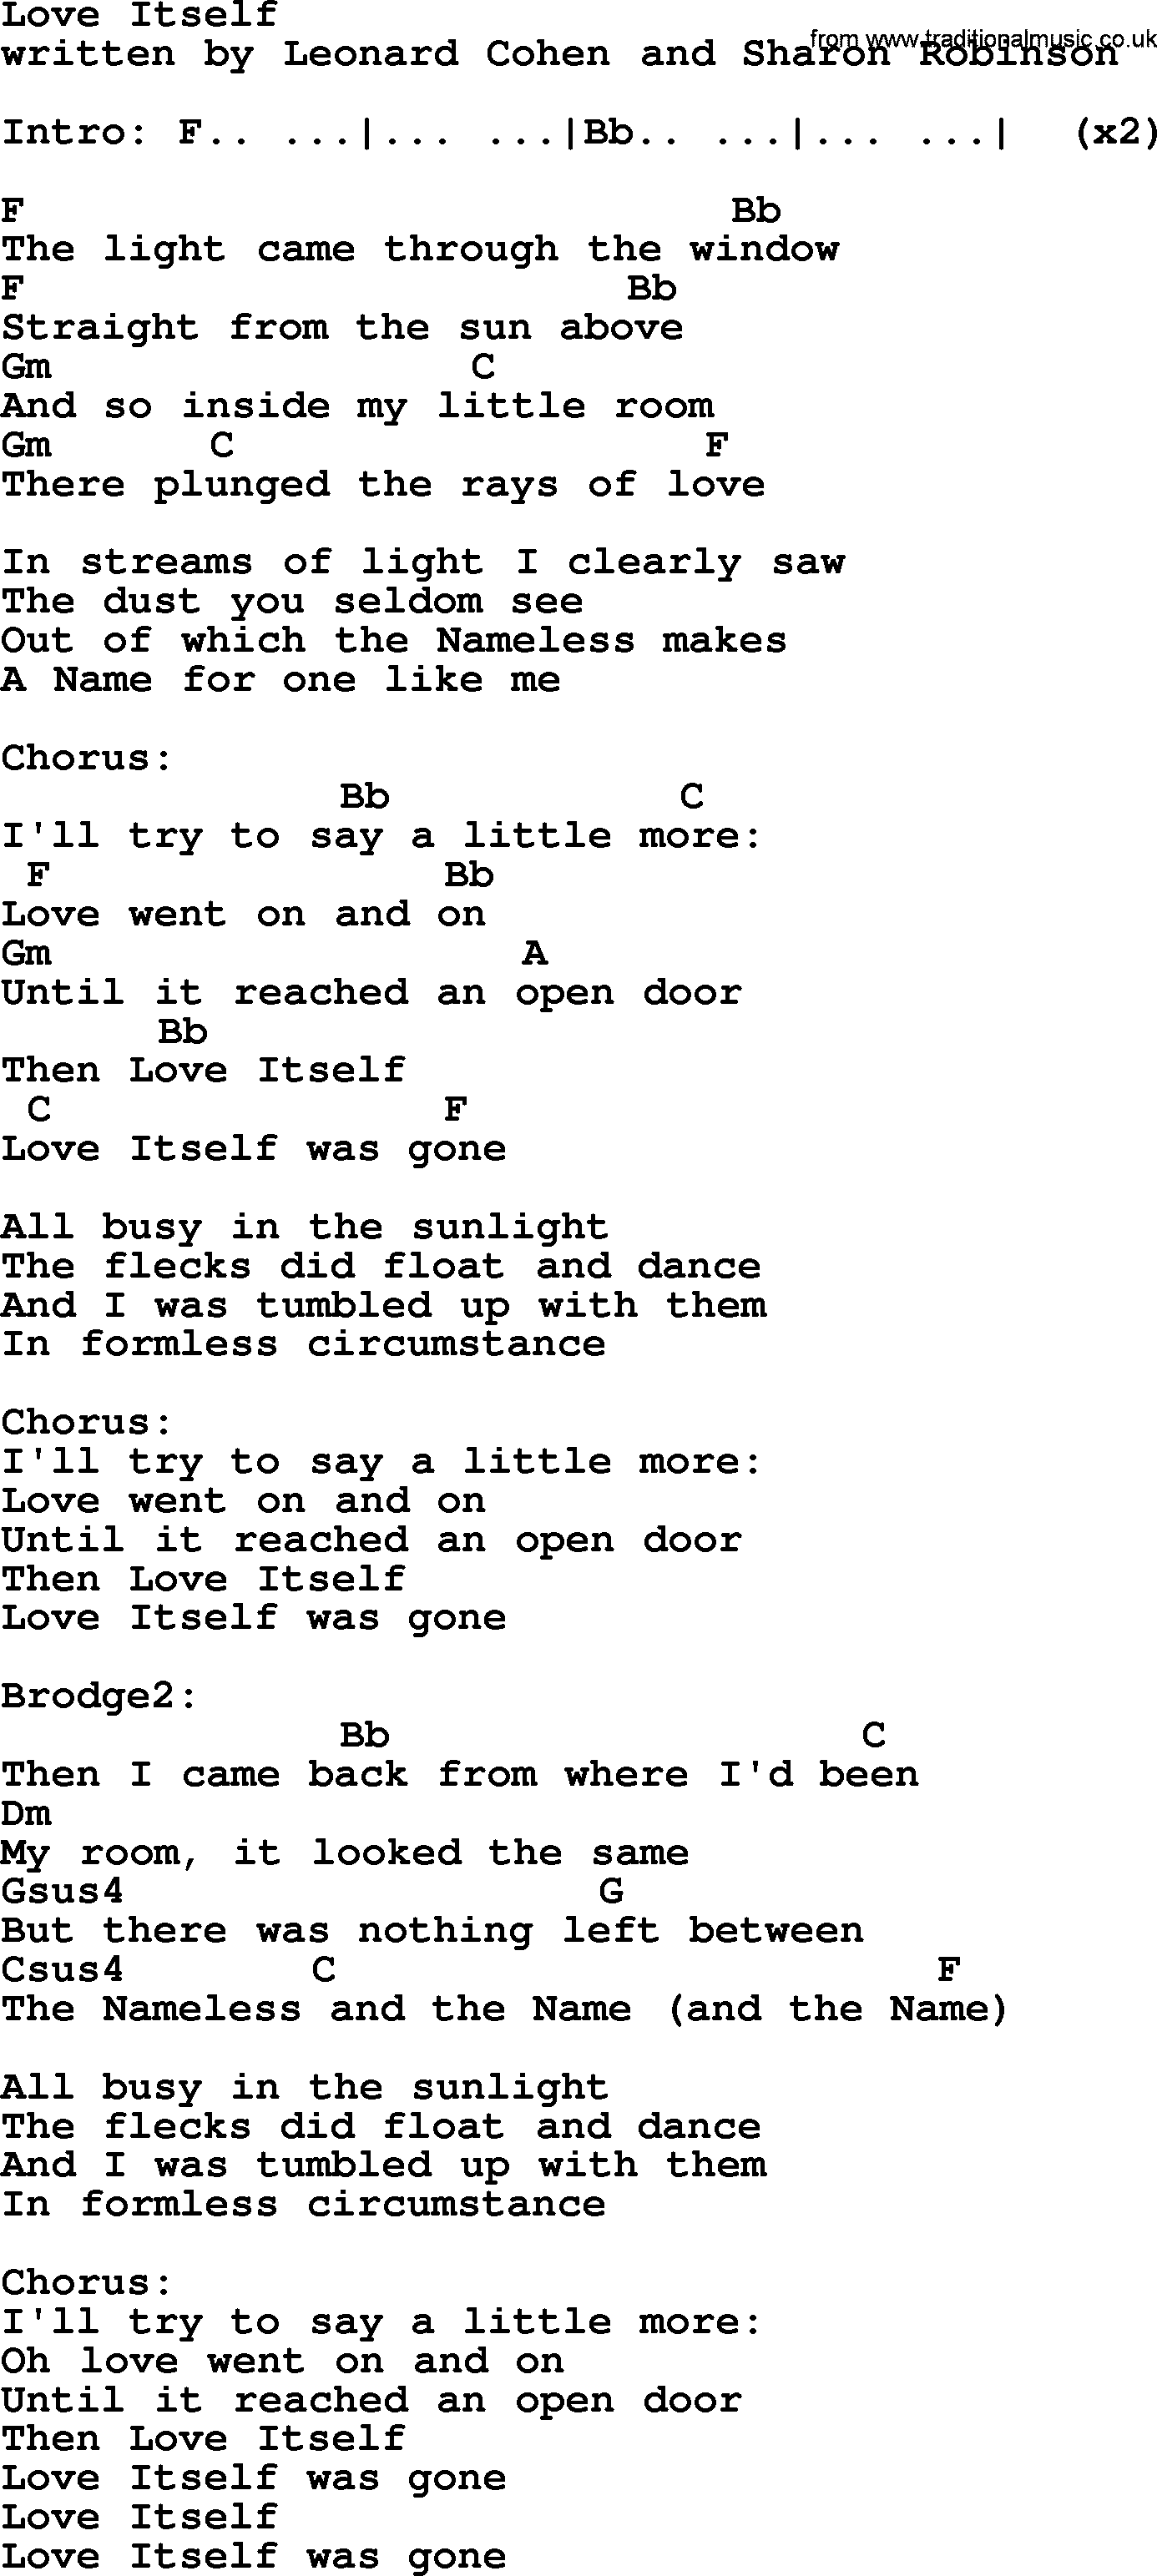 Leonard Cohen Song Love Itself Lyrics And Chords  sc 1 th 208 : lyrics door - pezcame.com